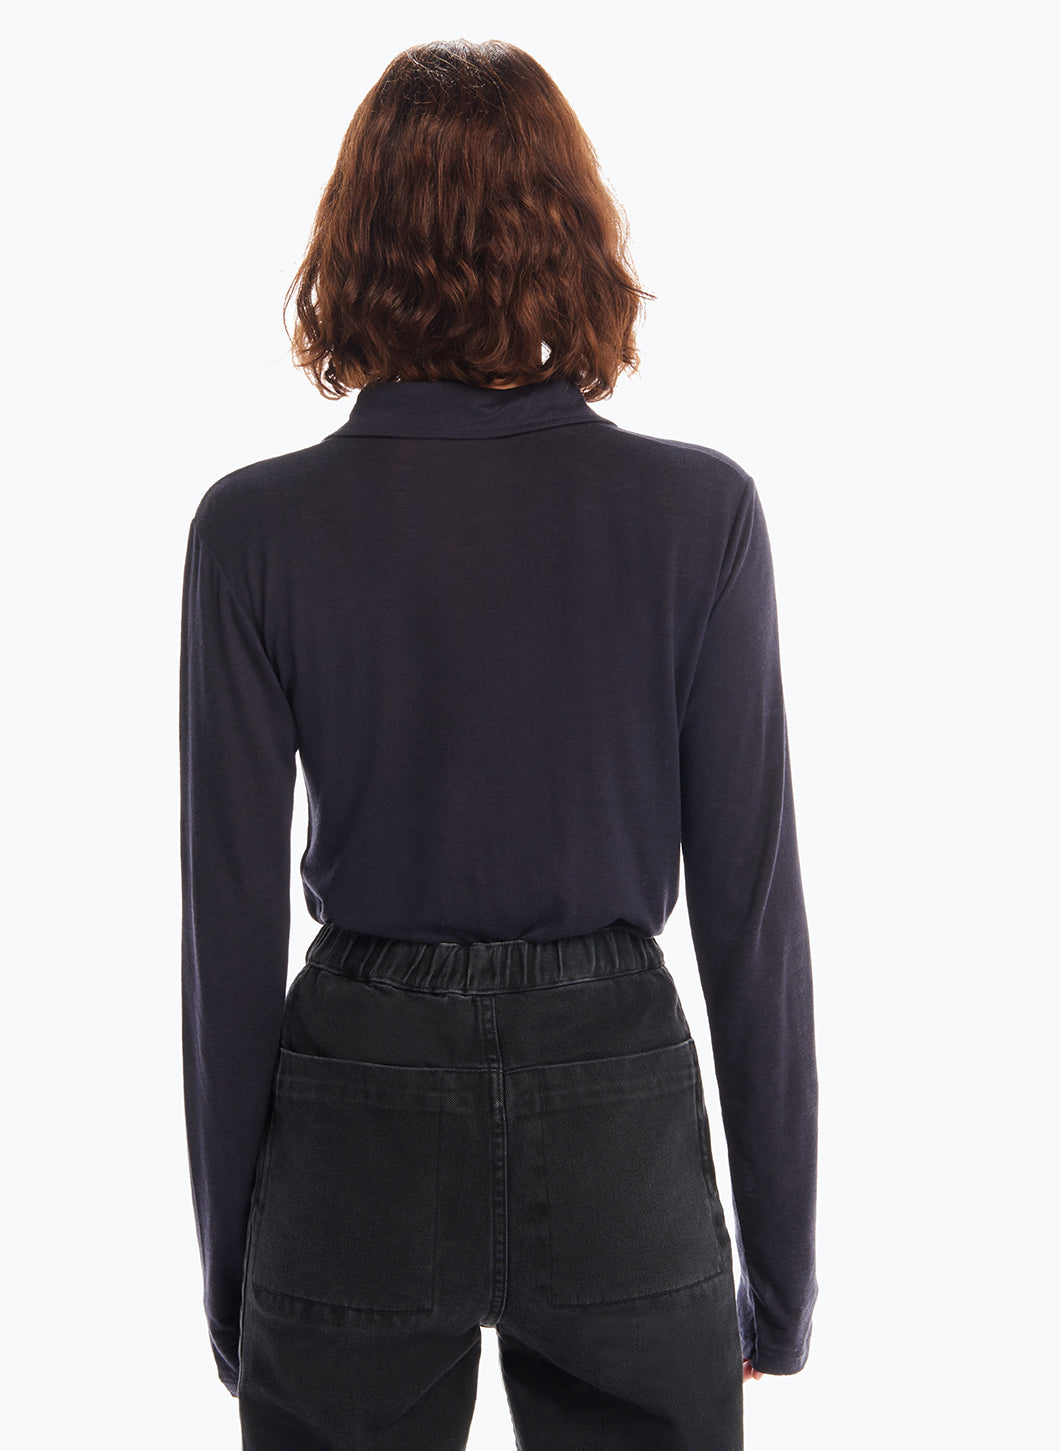 Long Sleeve Poloshirt in Navy Blue Tencel